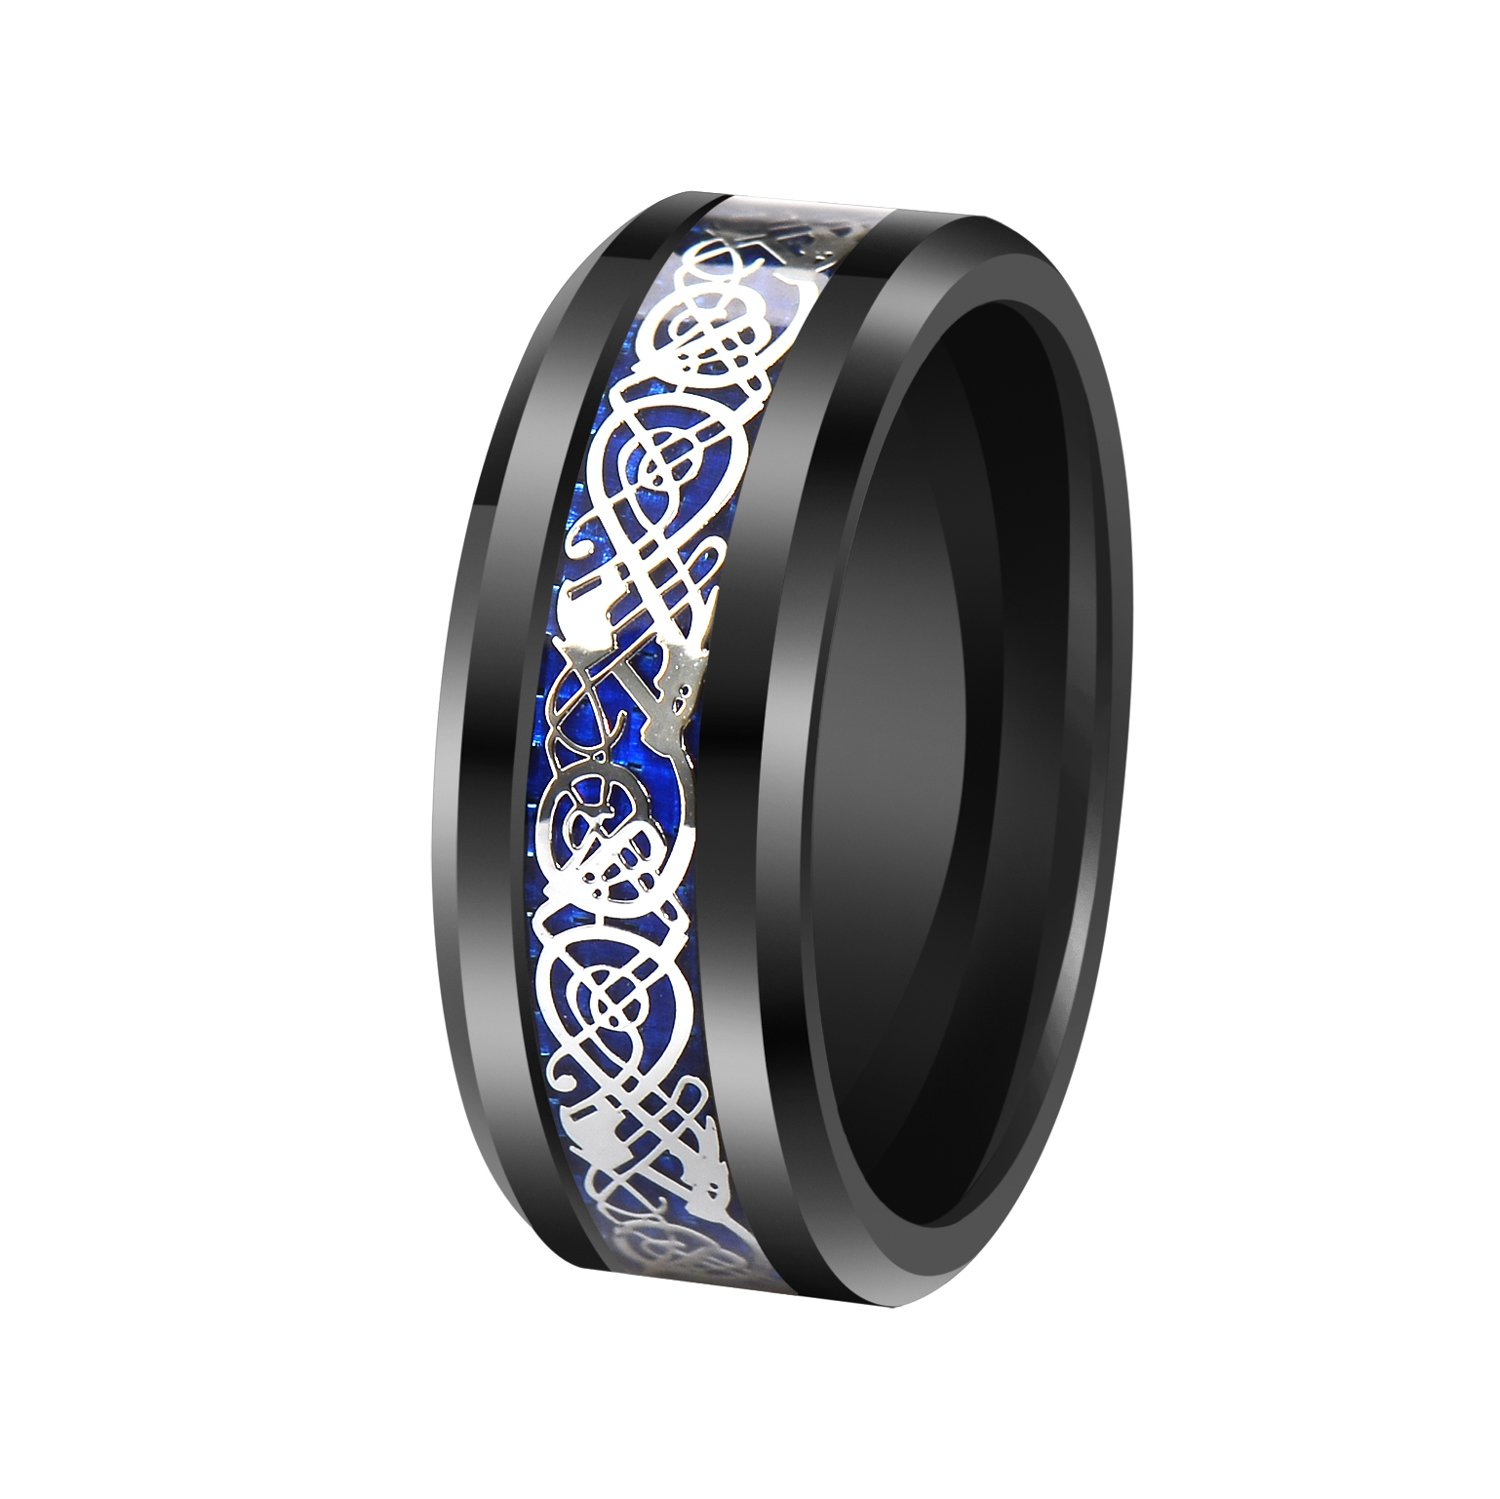 wedding blue with stainless jewelry rings steel men for fiber carbon cool masonic amp black